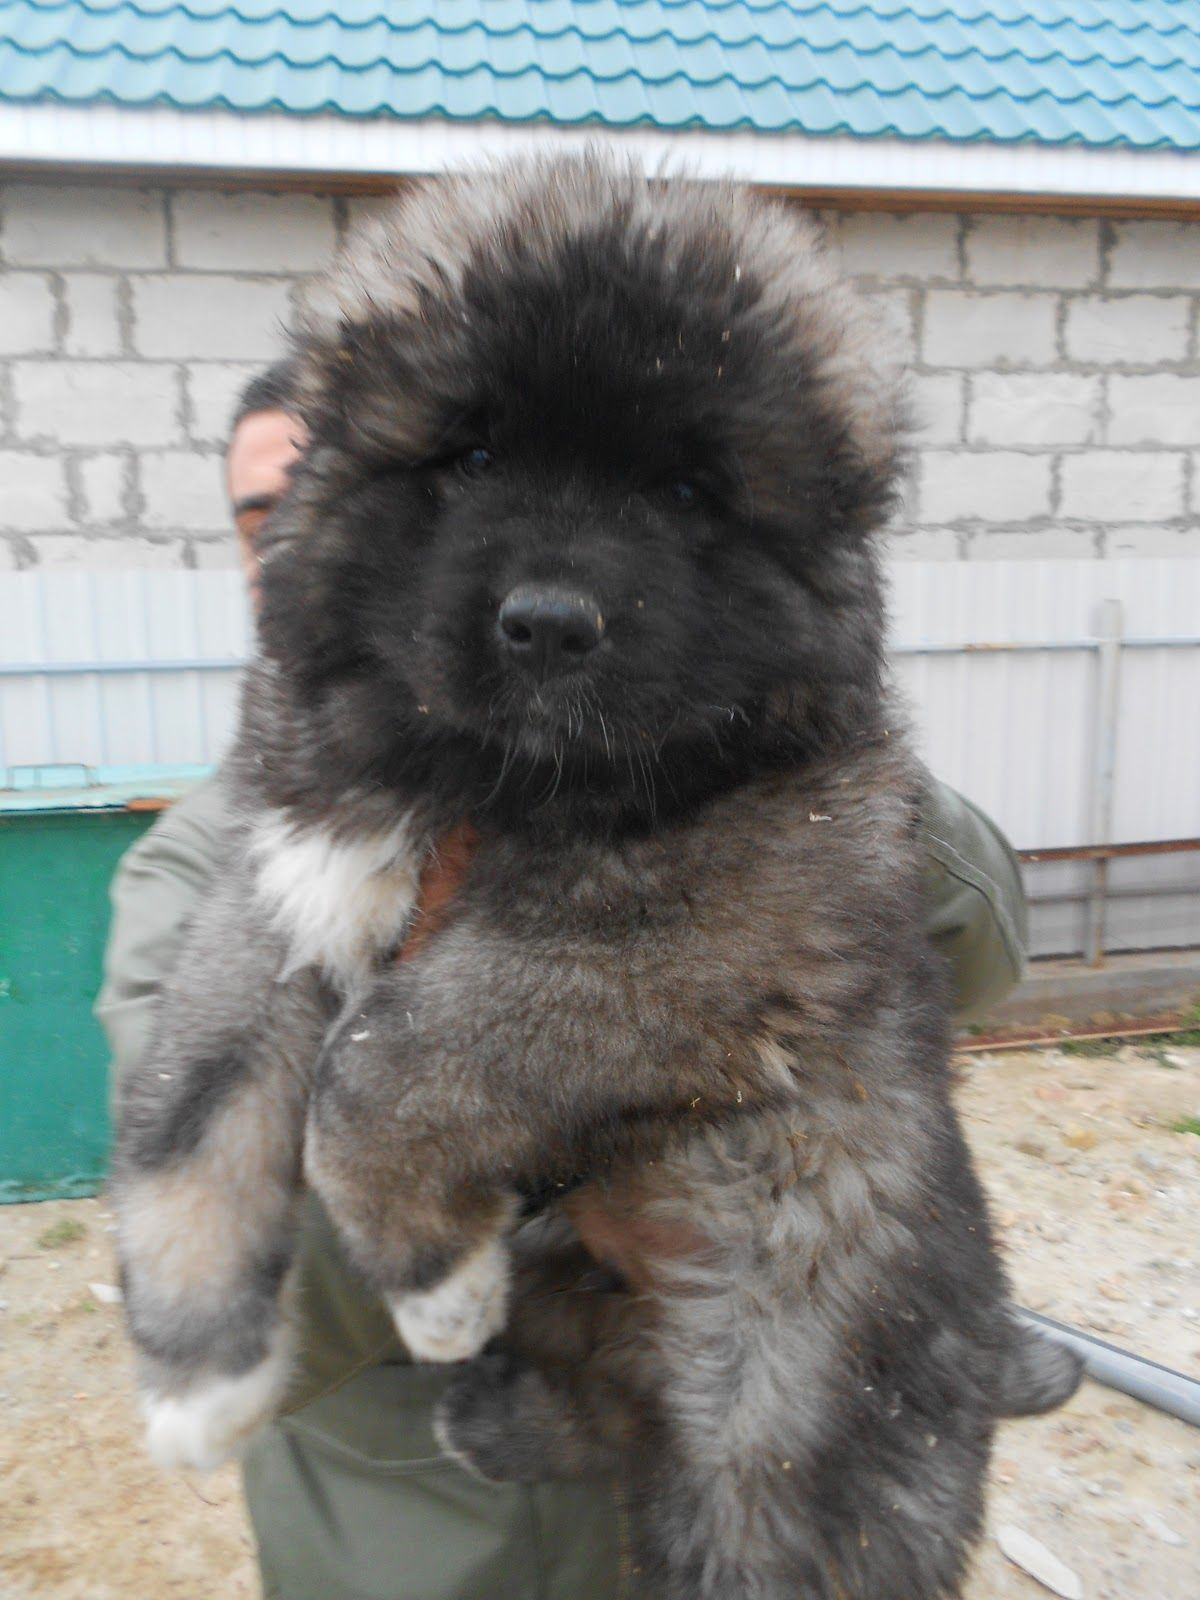 Simple Caucasian Ovcharka Chubby Adorable Dog - de8c341869dfa6c20c19b9a19eb1fc3d  Image_484150  .jpg